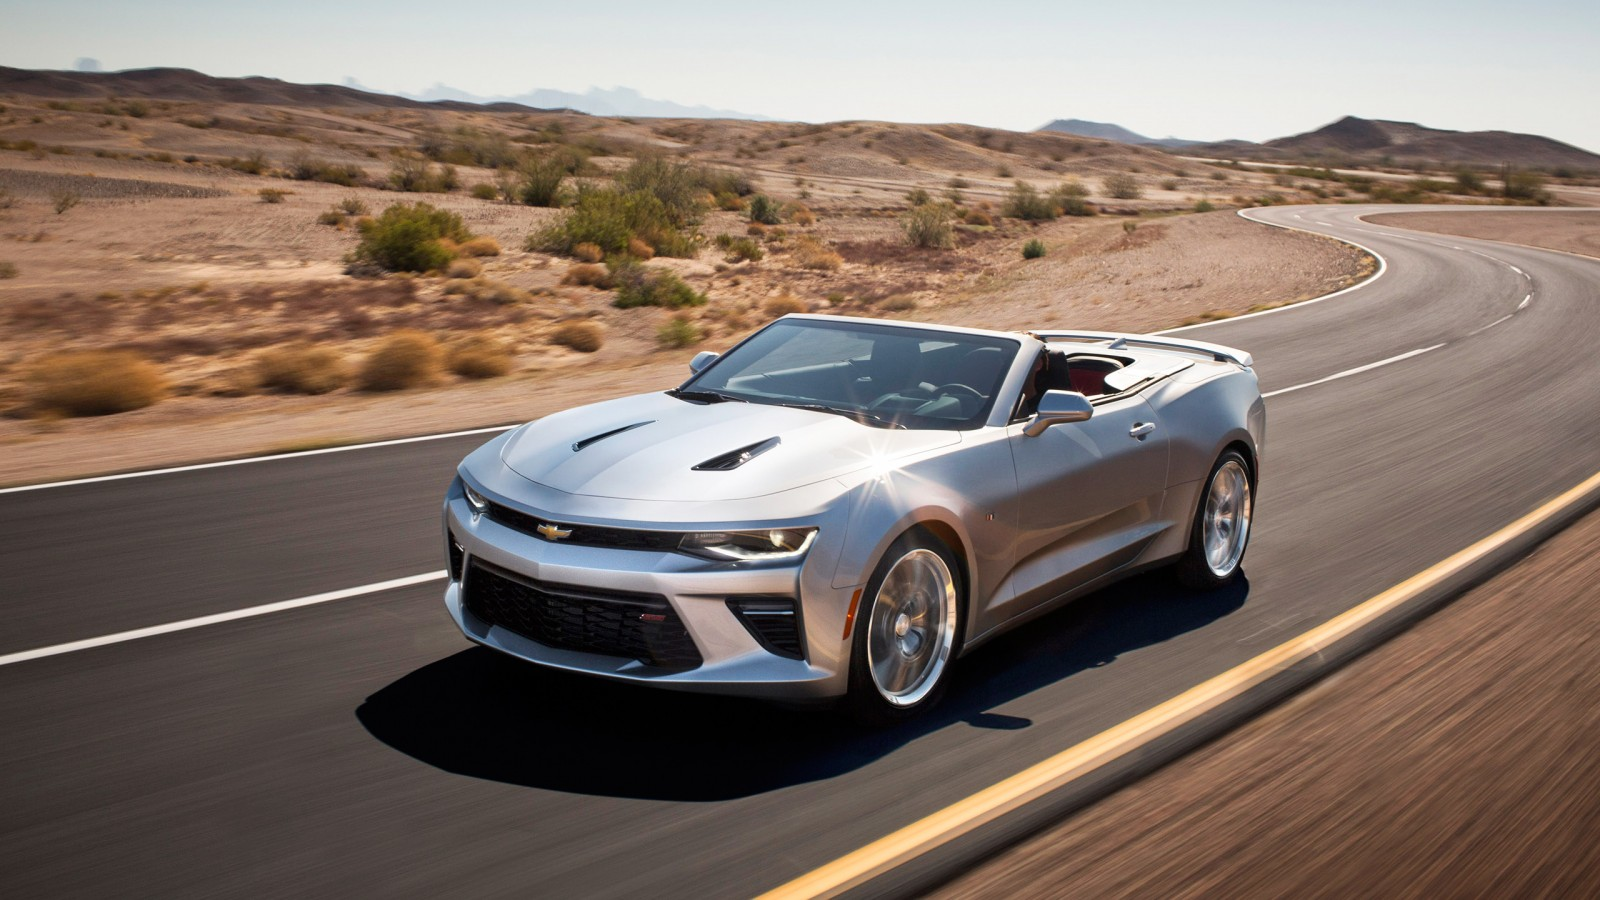 2016 chevrolet camaro convertible wallpaper hd car wallpapers. Cars Review. Best American Auto & Cars Review